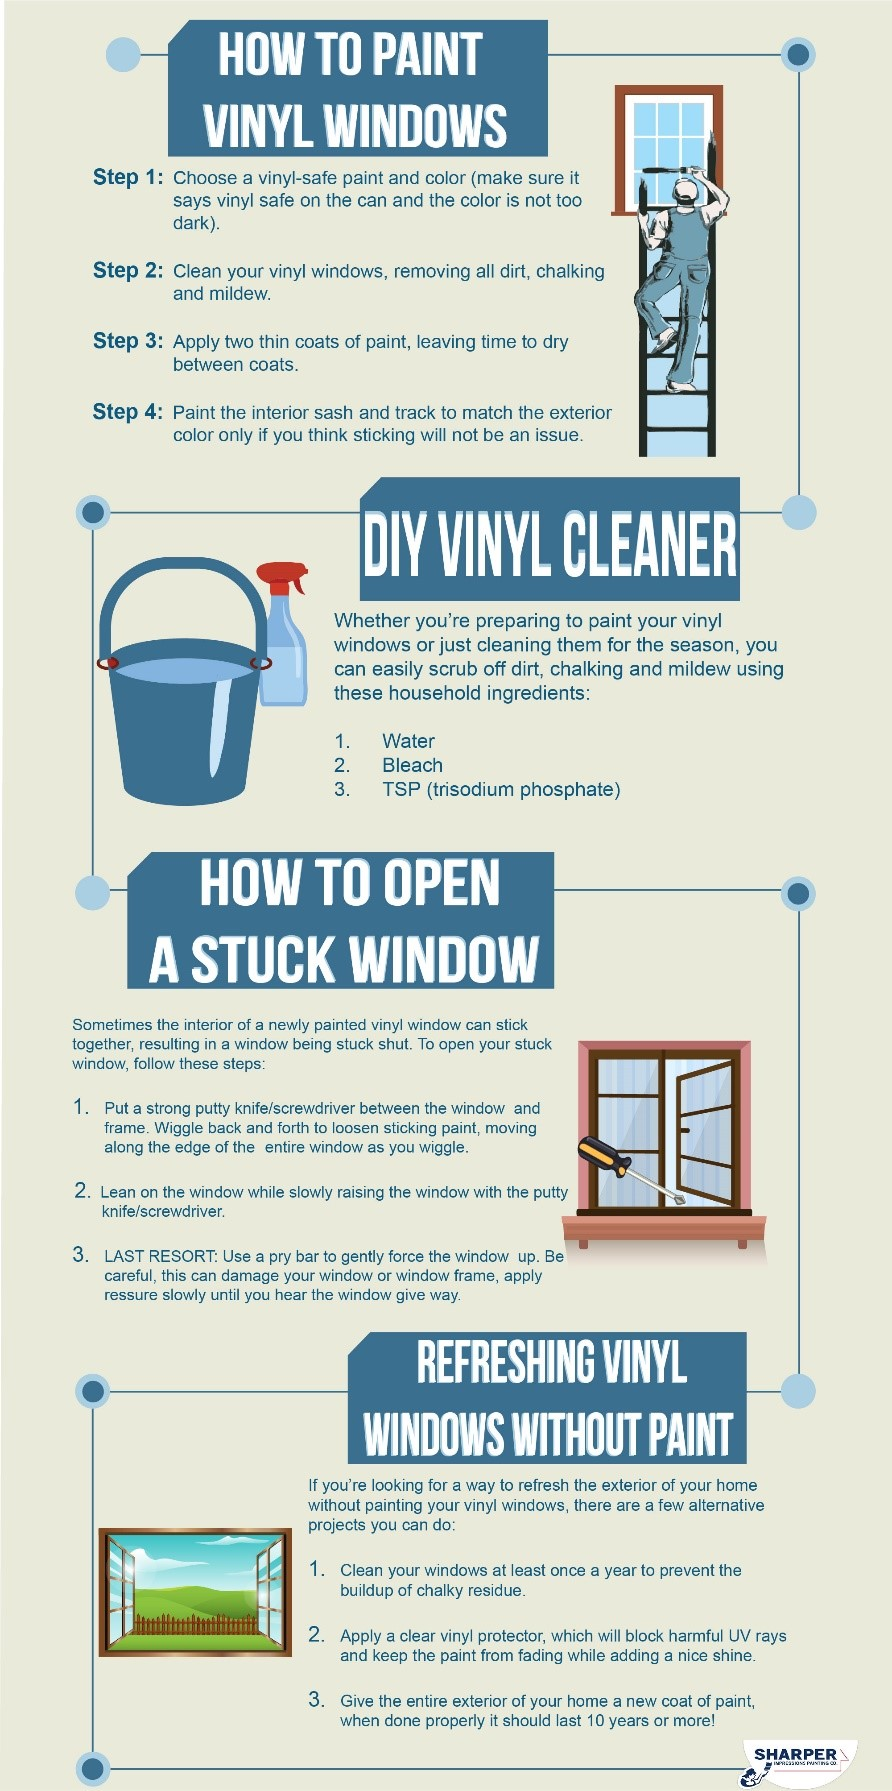 How to paint vinyl windows sharper impressions painting well break down the process of how to paint vinyl windows into a few easy to follow steps rubansaba